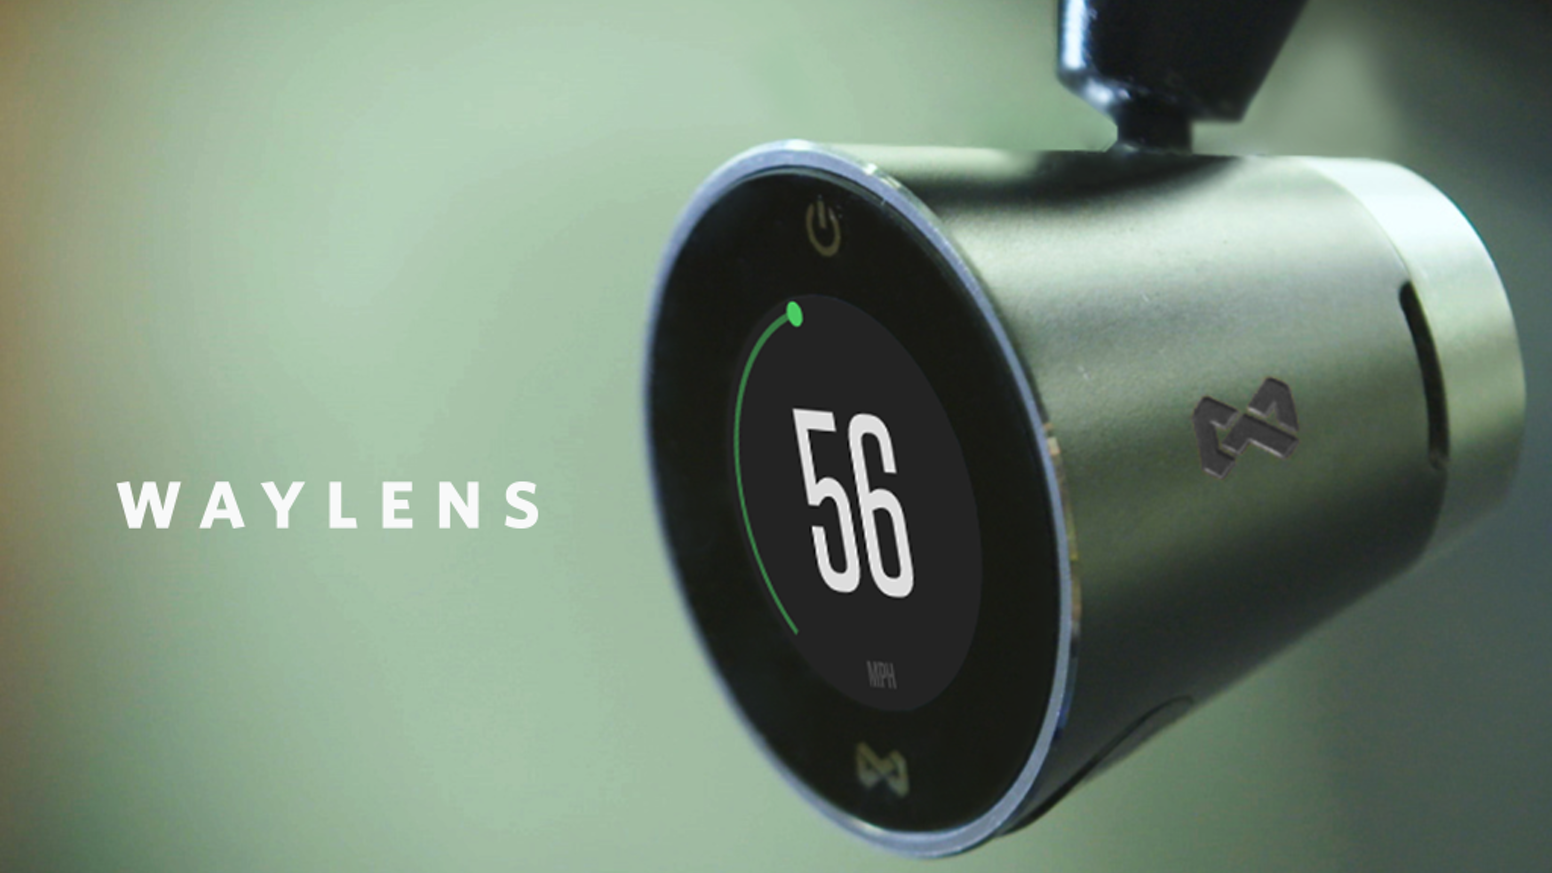 A beautifully crafted camera system that empowers drivers to easily capture, edit, and share interesting moments right from the road.